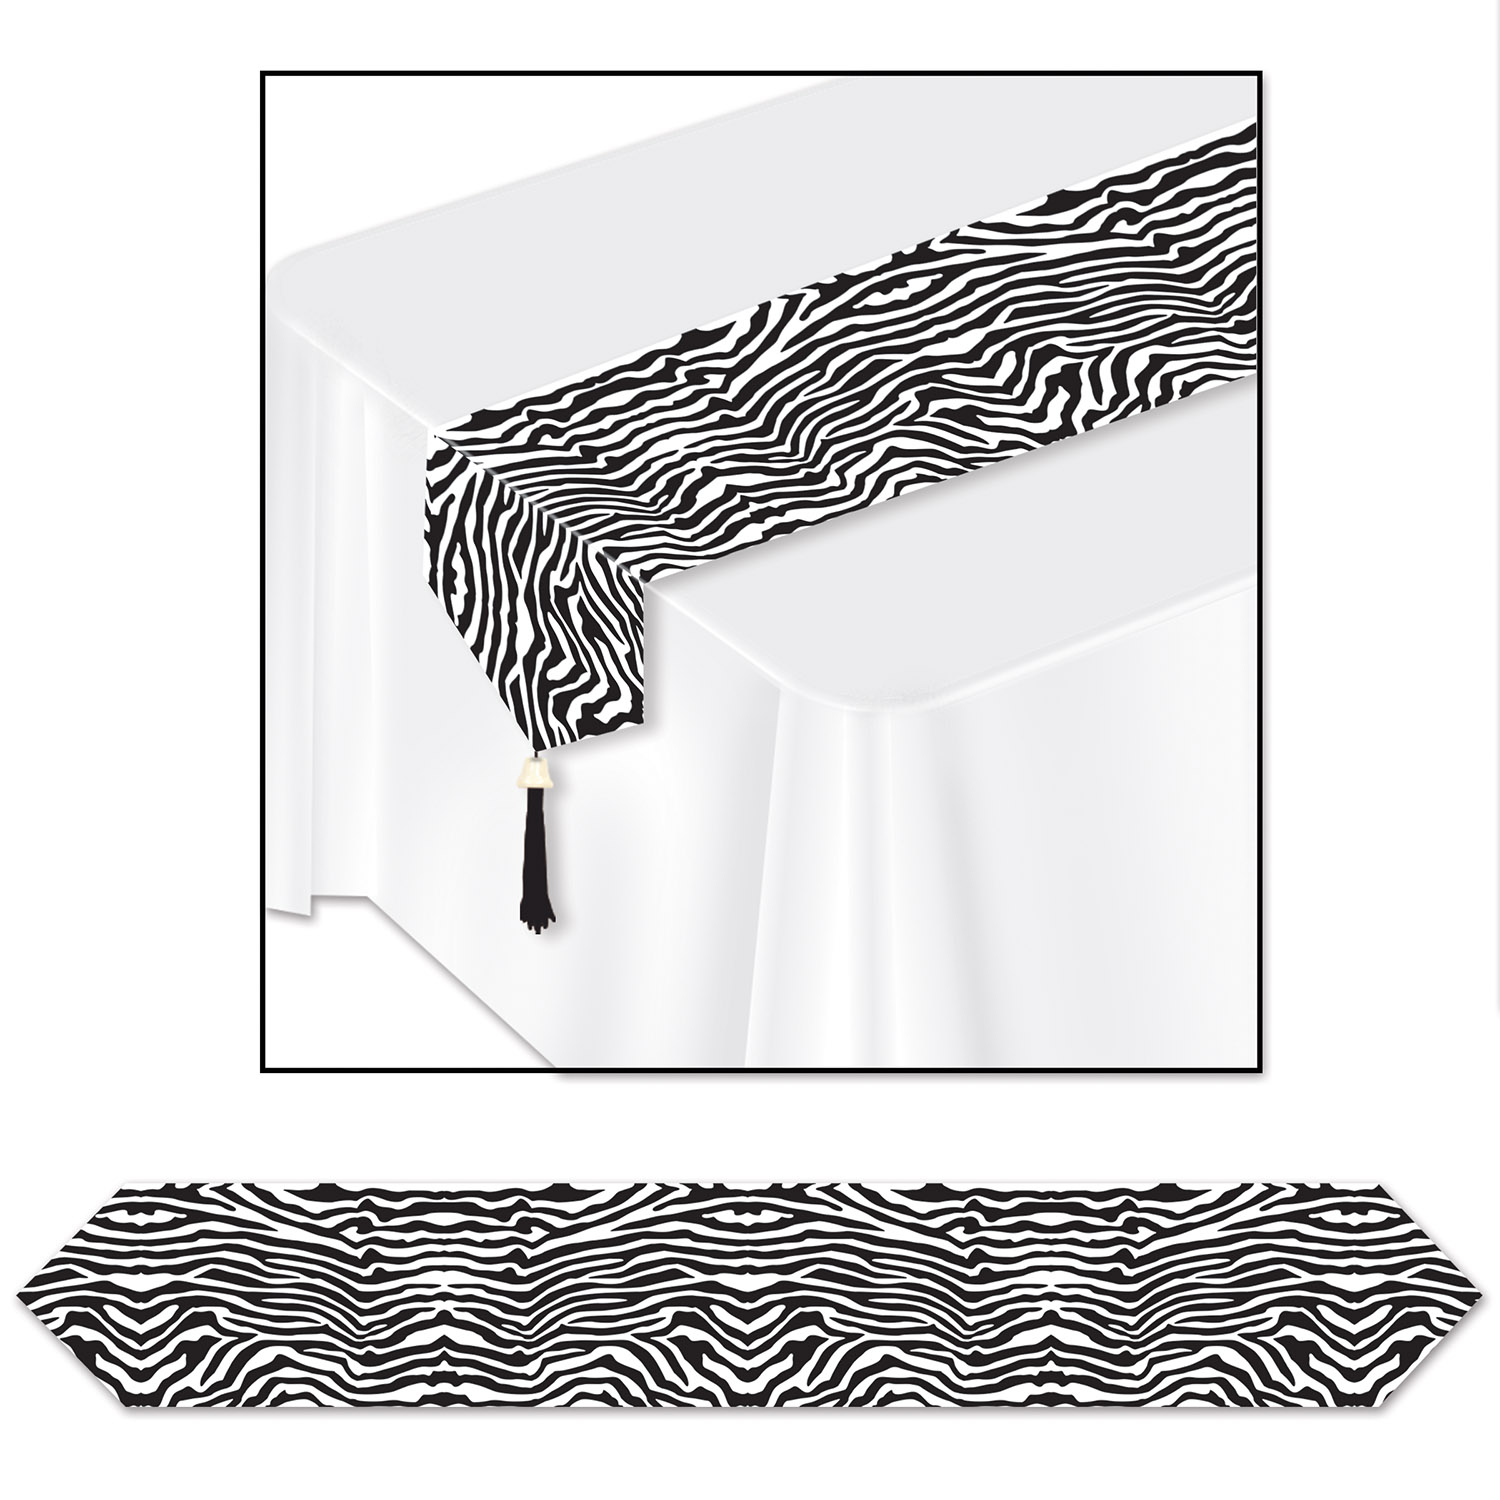 zebra printed table runner with a black tassel